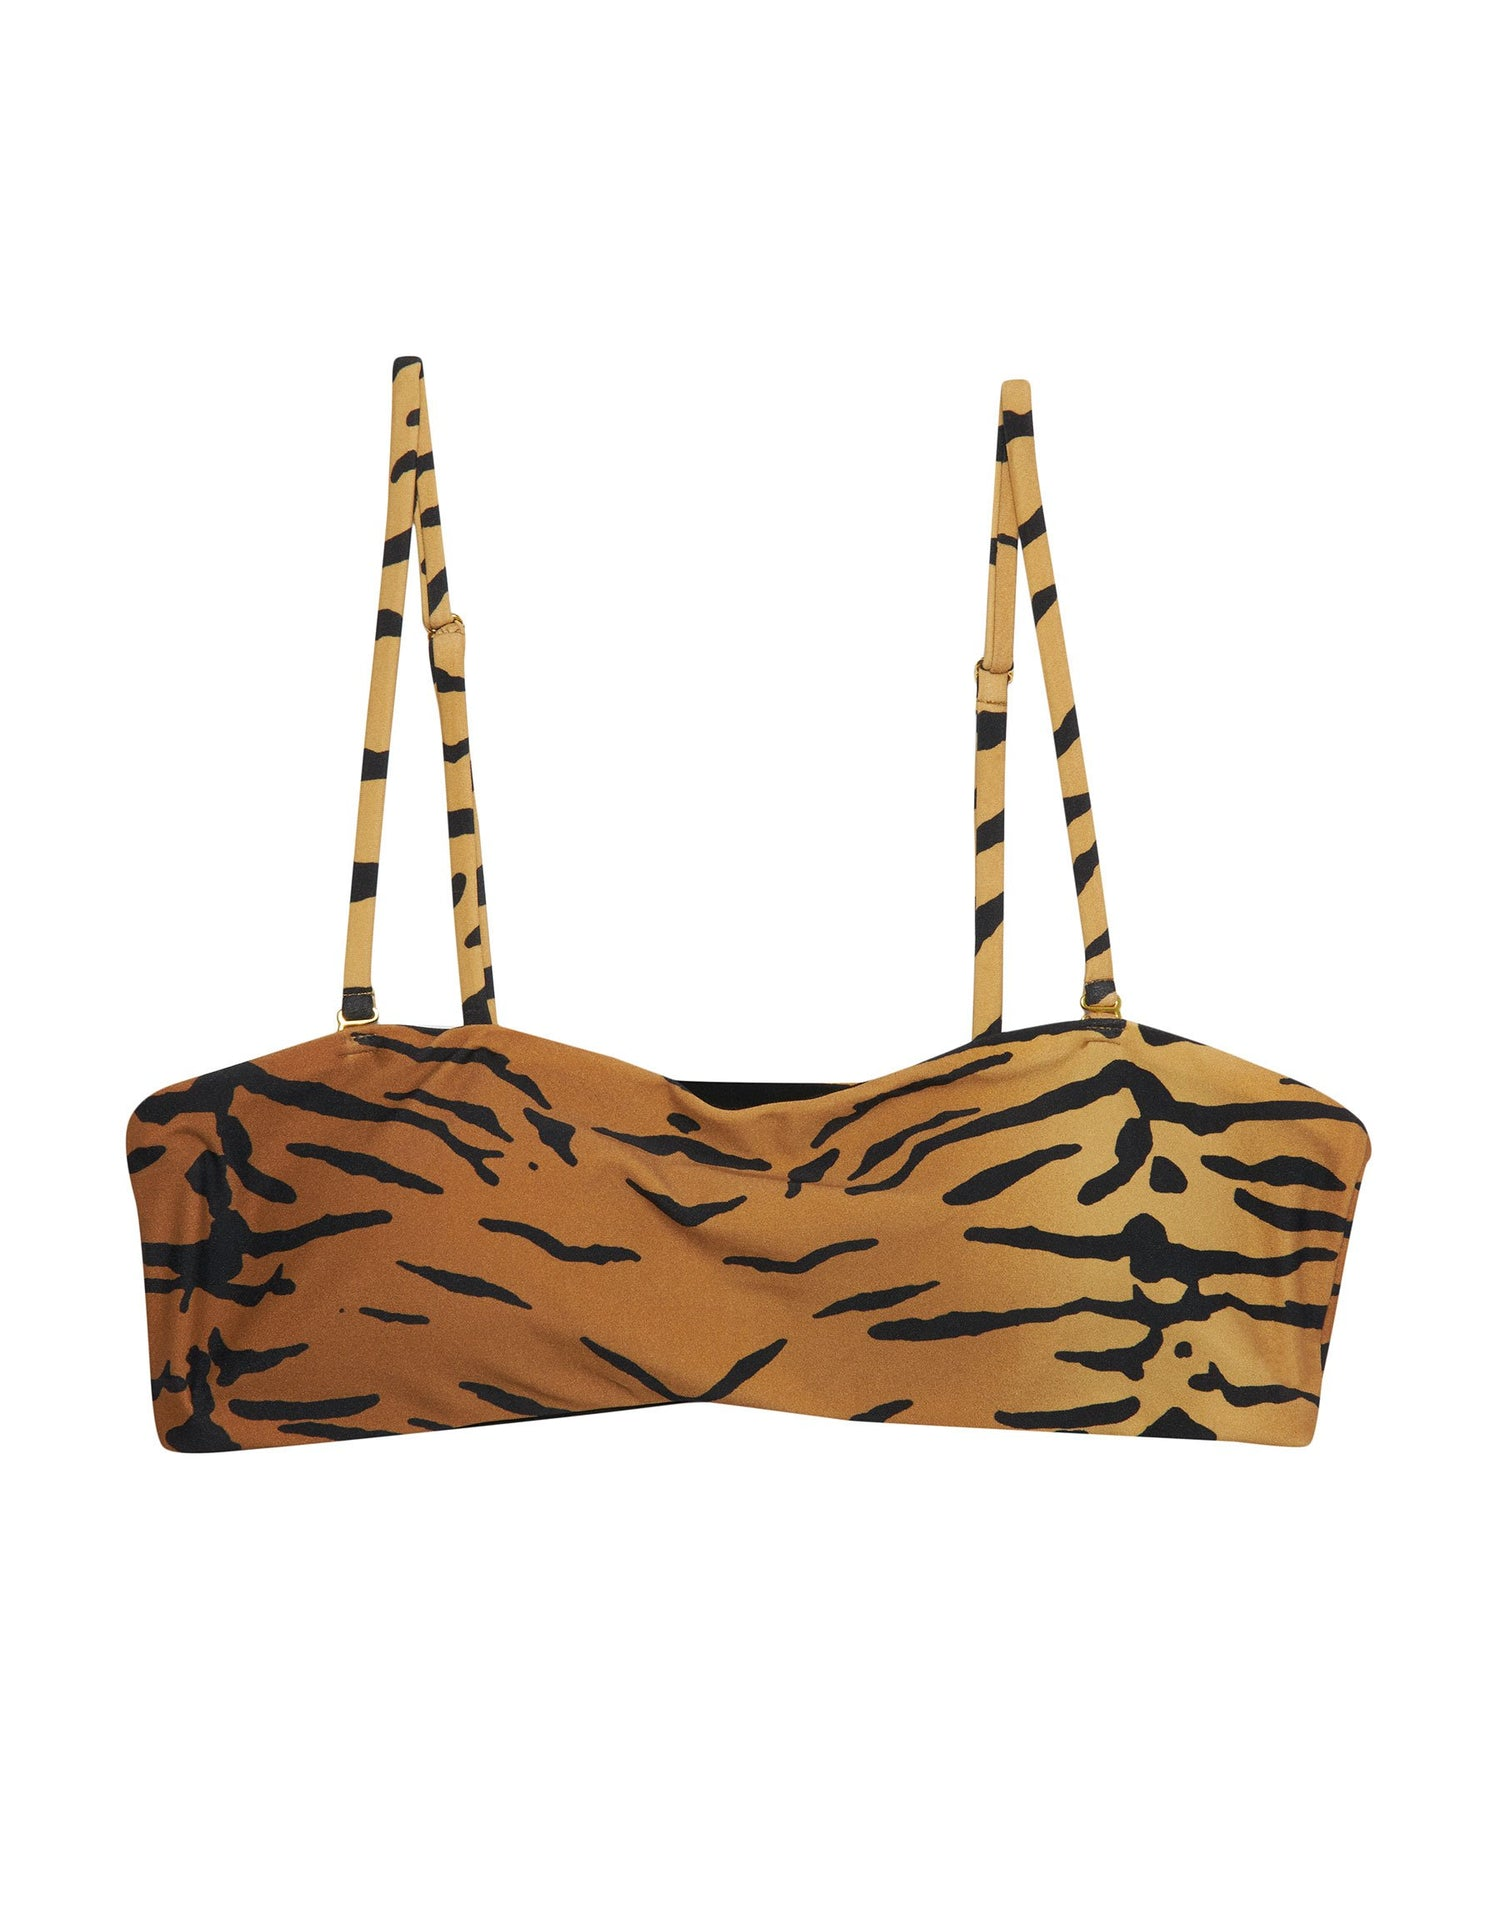 London Bralette Bikini Top in Tiger with Straps - product view